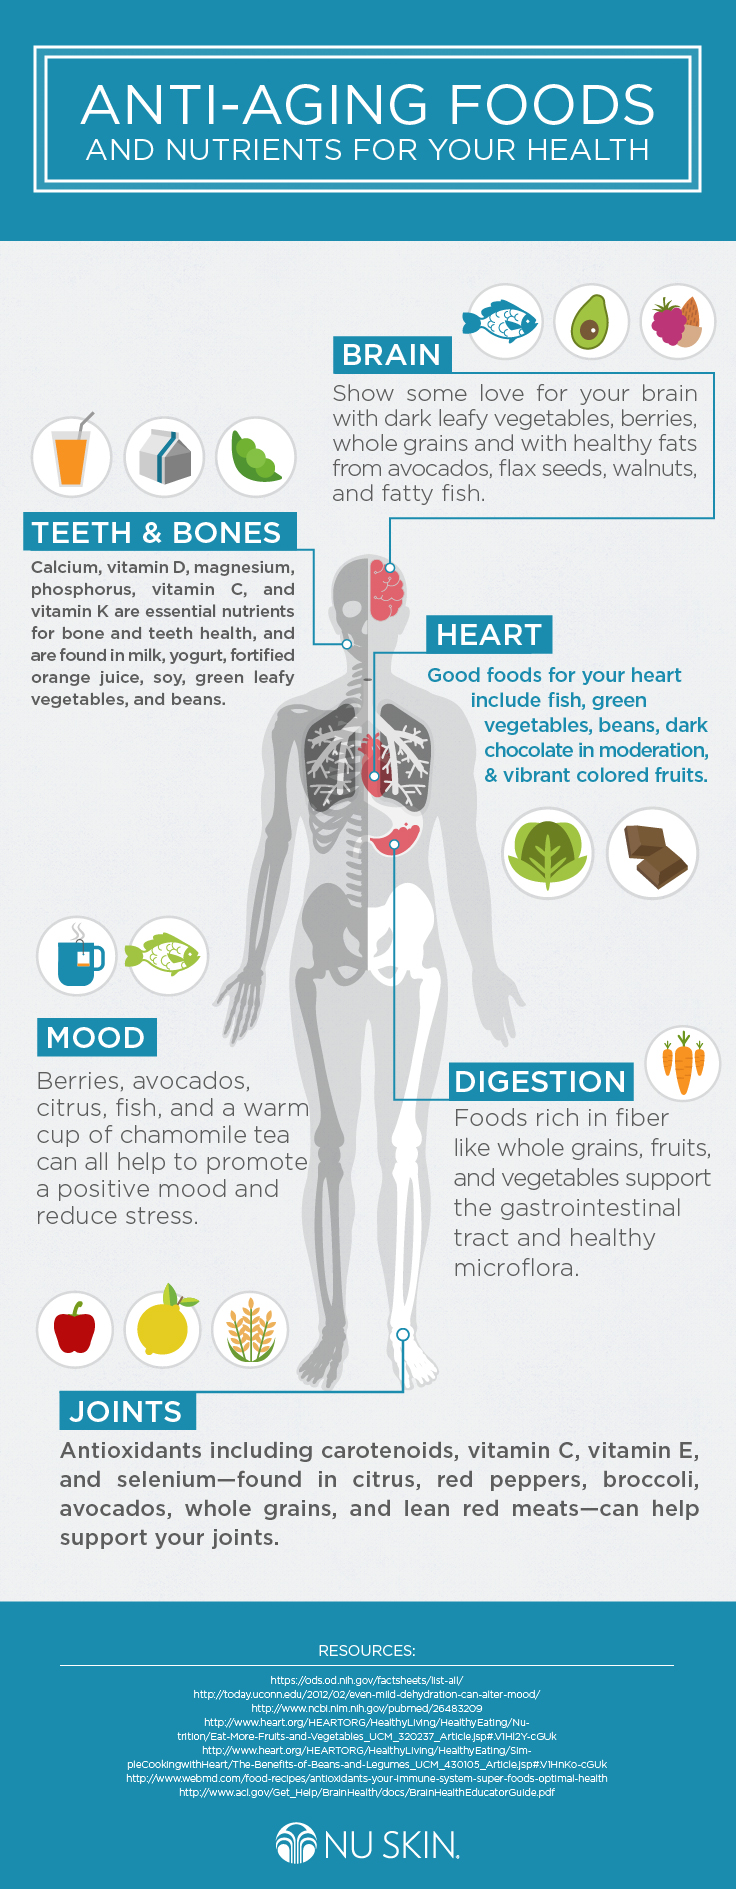 Anti-Aging Foods Infographic